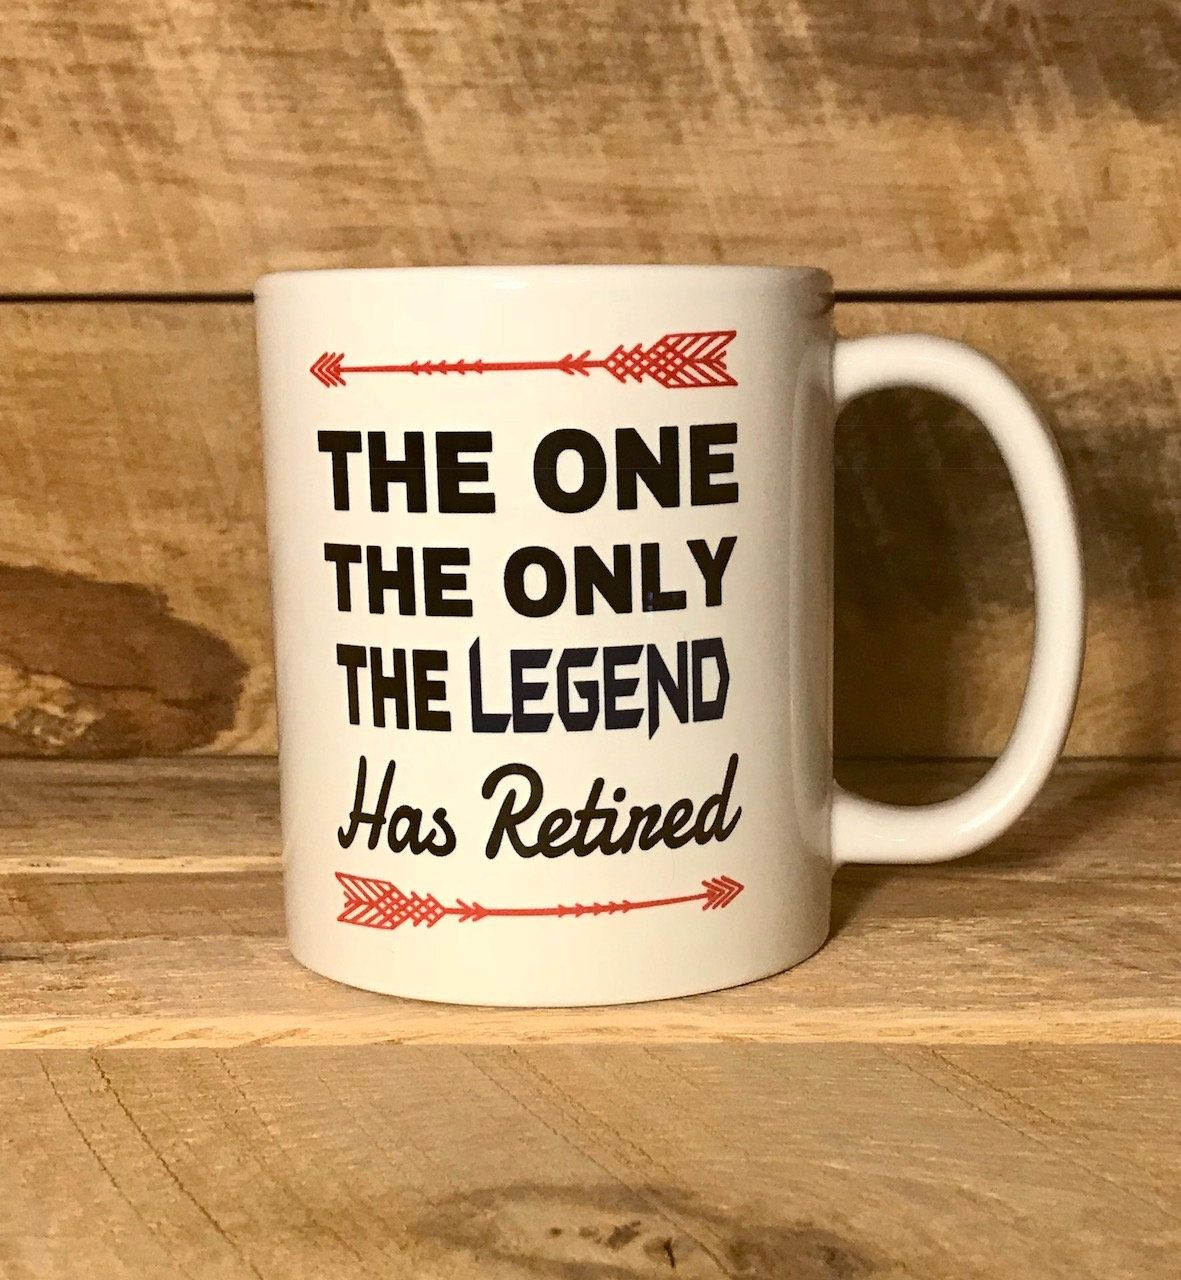 Funny retirement coffee mug retirement mug mug for boss retirement gift coffee mug with saying mugs office mug mug for boss coffee cups #bosscoffee